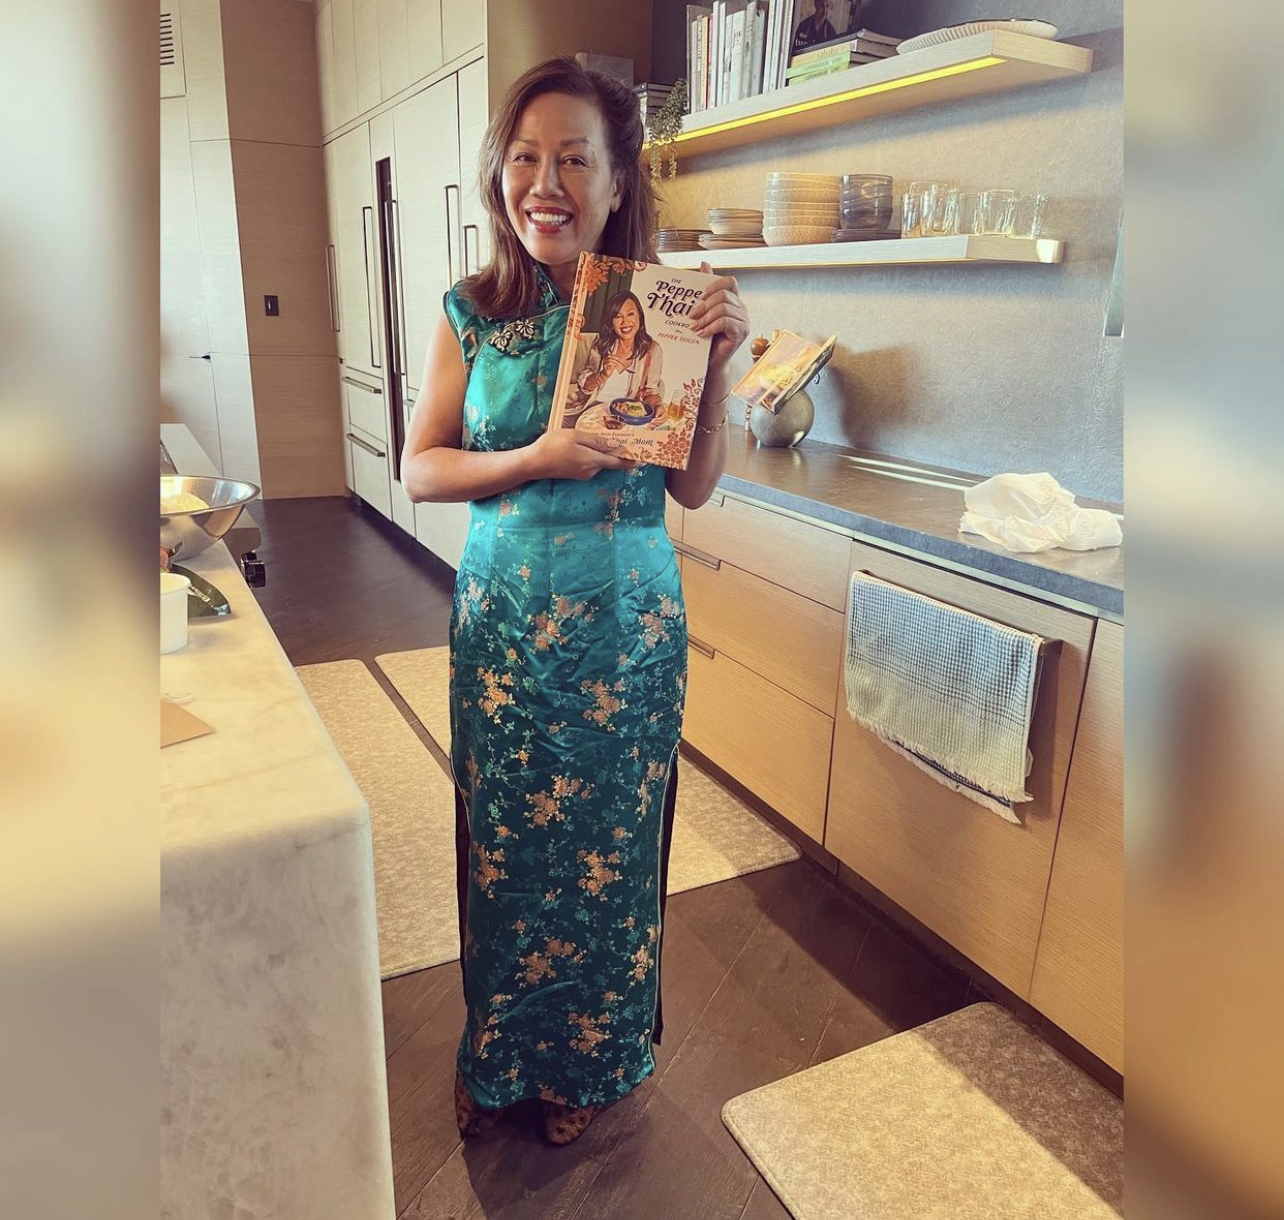 pepper vilailuck teigen shows off her cooking book The Pepper Thai Cookbook: Family Recipes From Everyone's Favorite Thai Mom